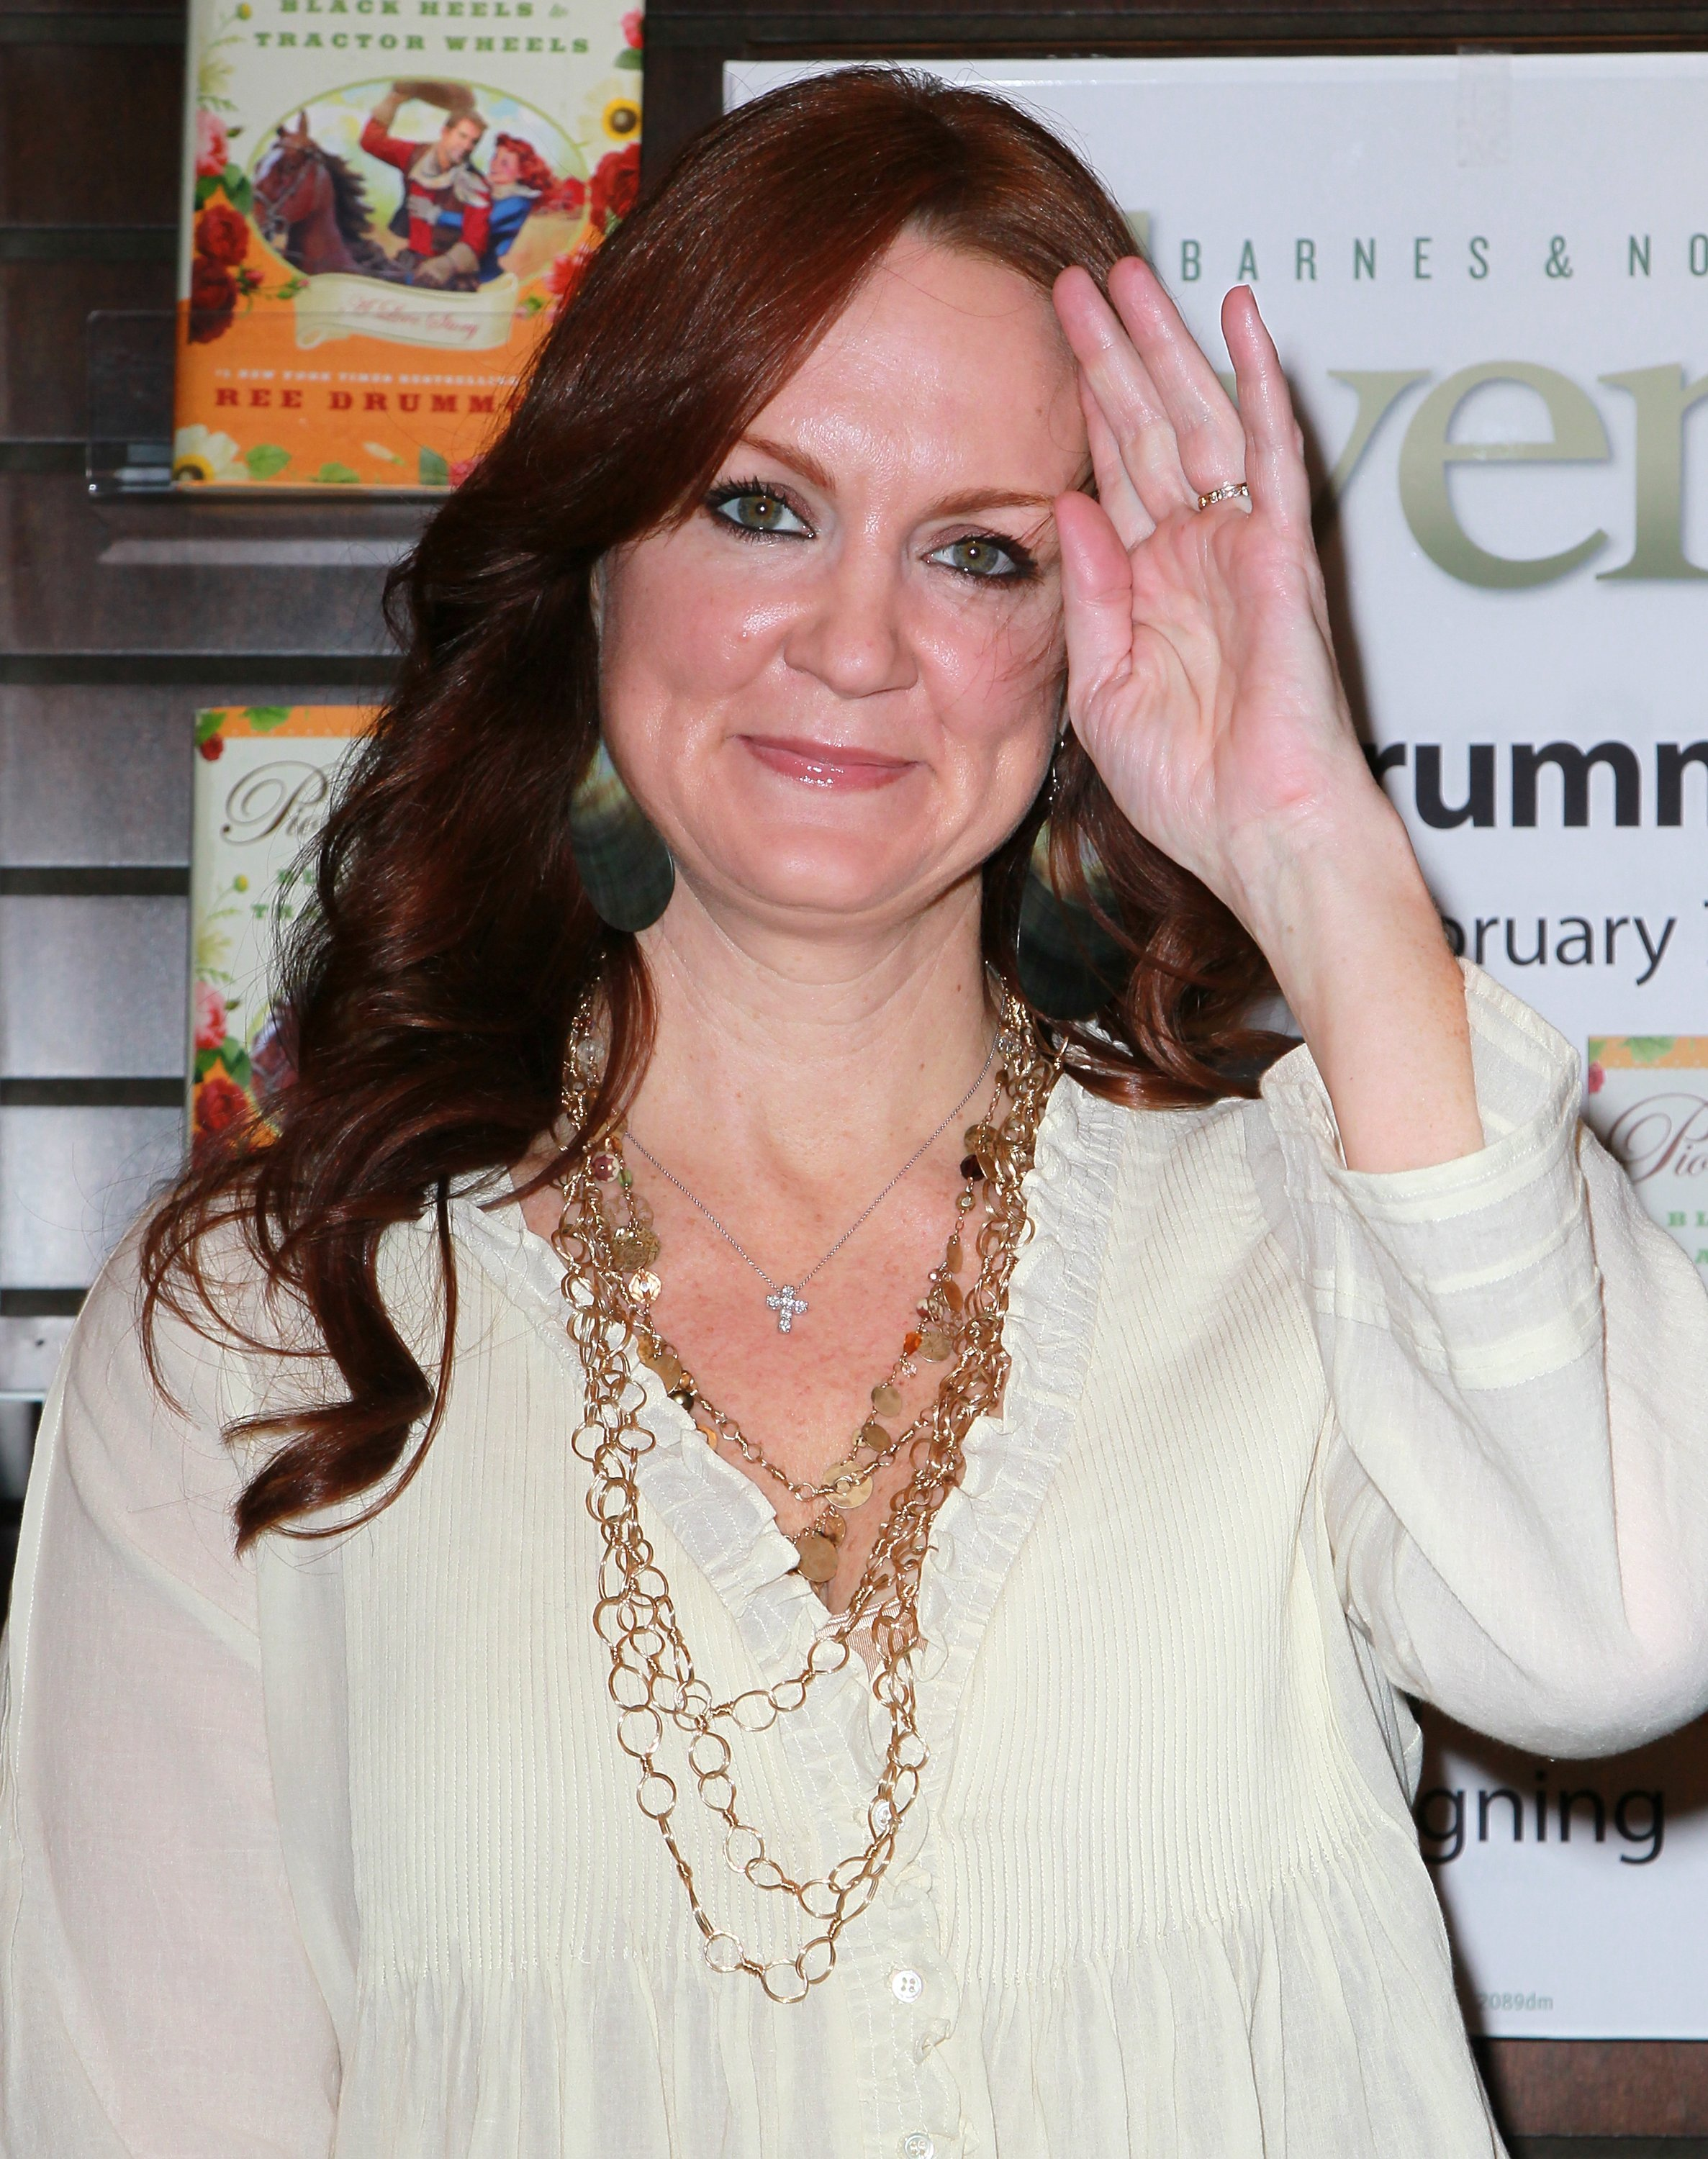 """Ree Drummond attends a signing for her book """"The Pioneer Woman"""" at Barnes & Noble Booksellers at The Grove on February 7, 2011 in Los Angeles, California 